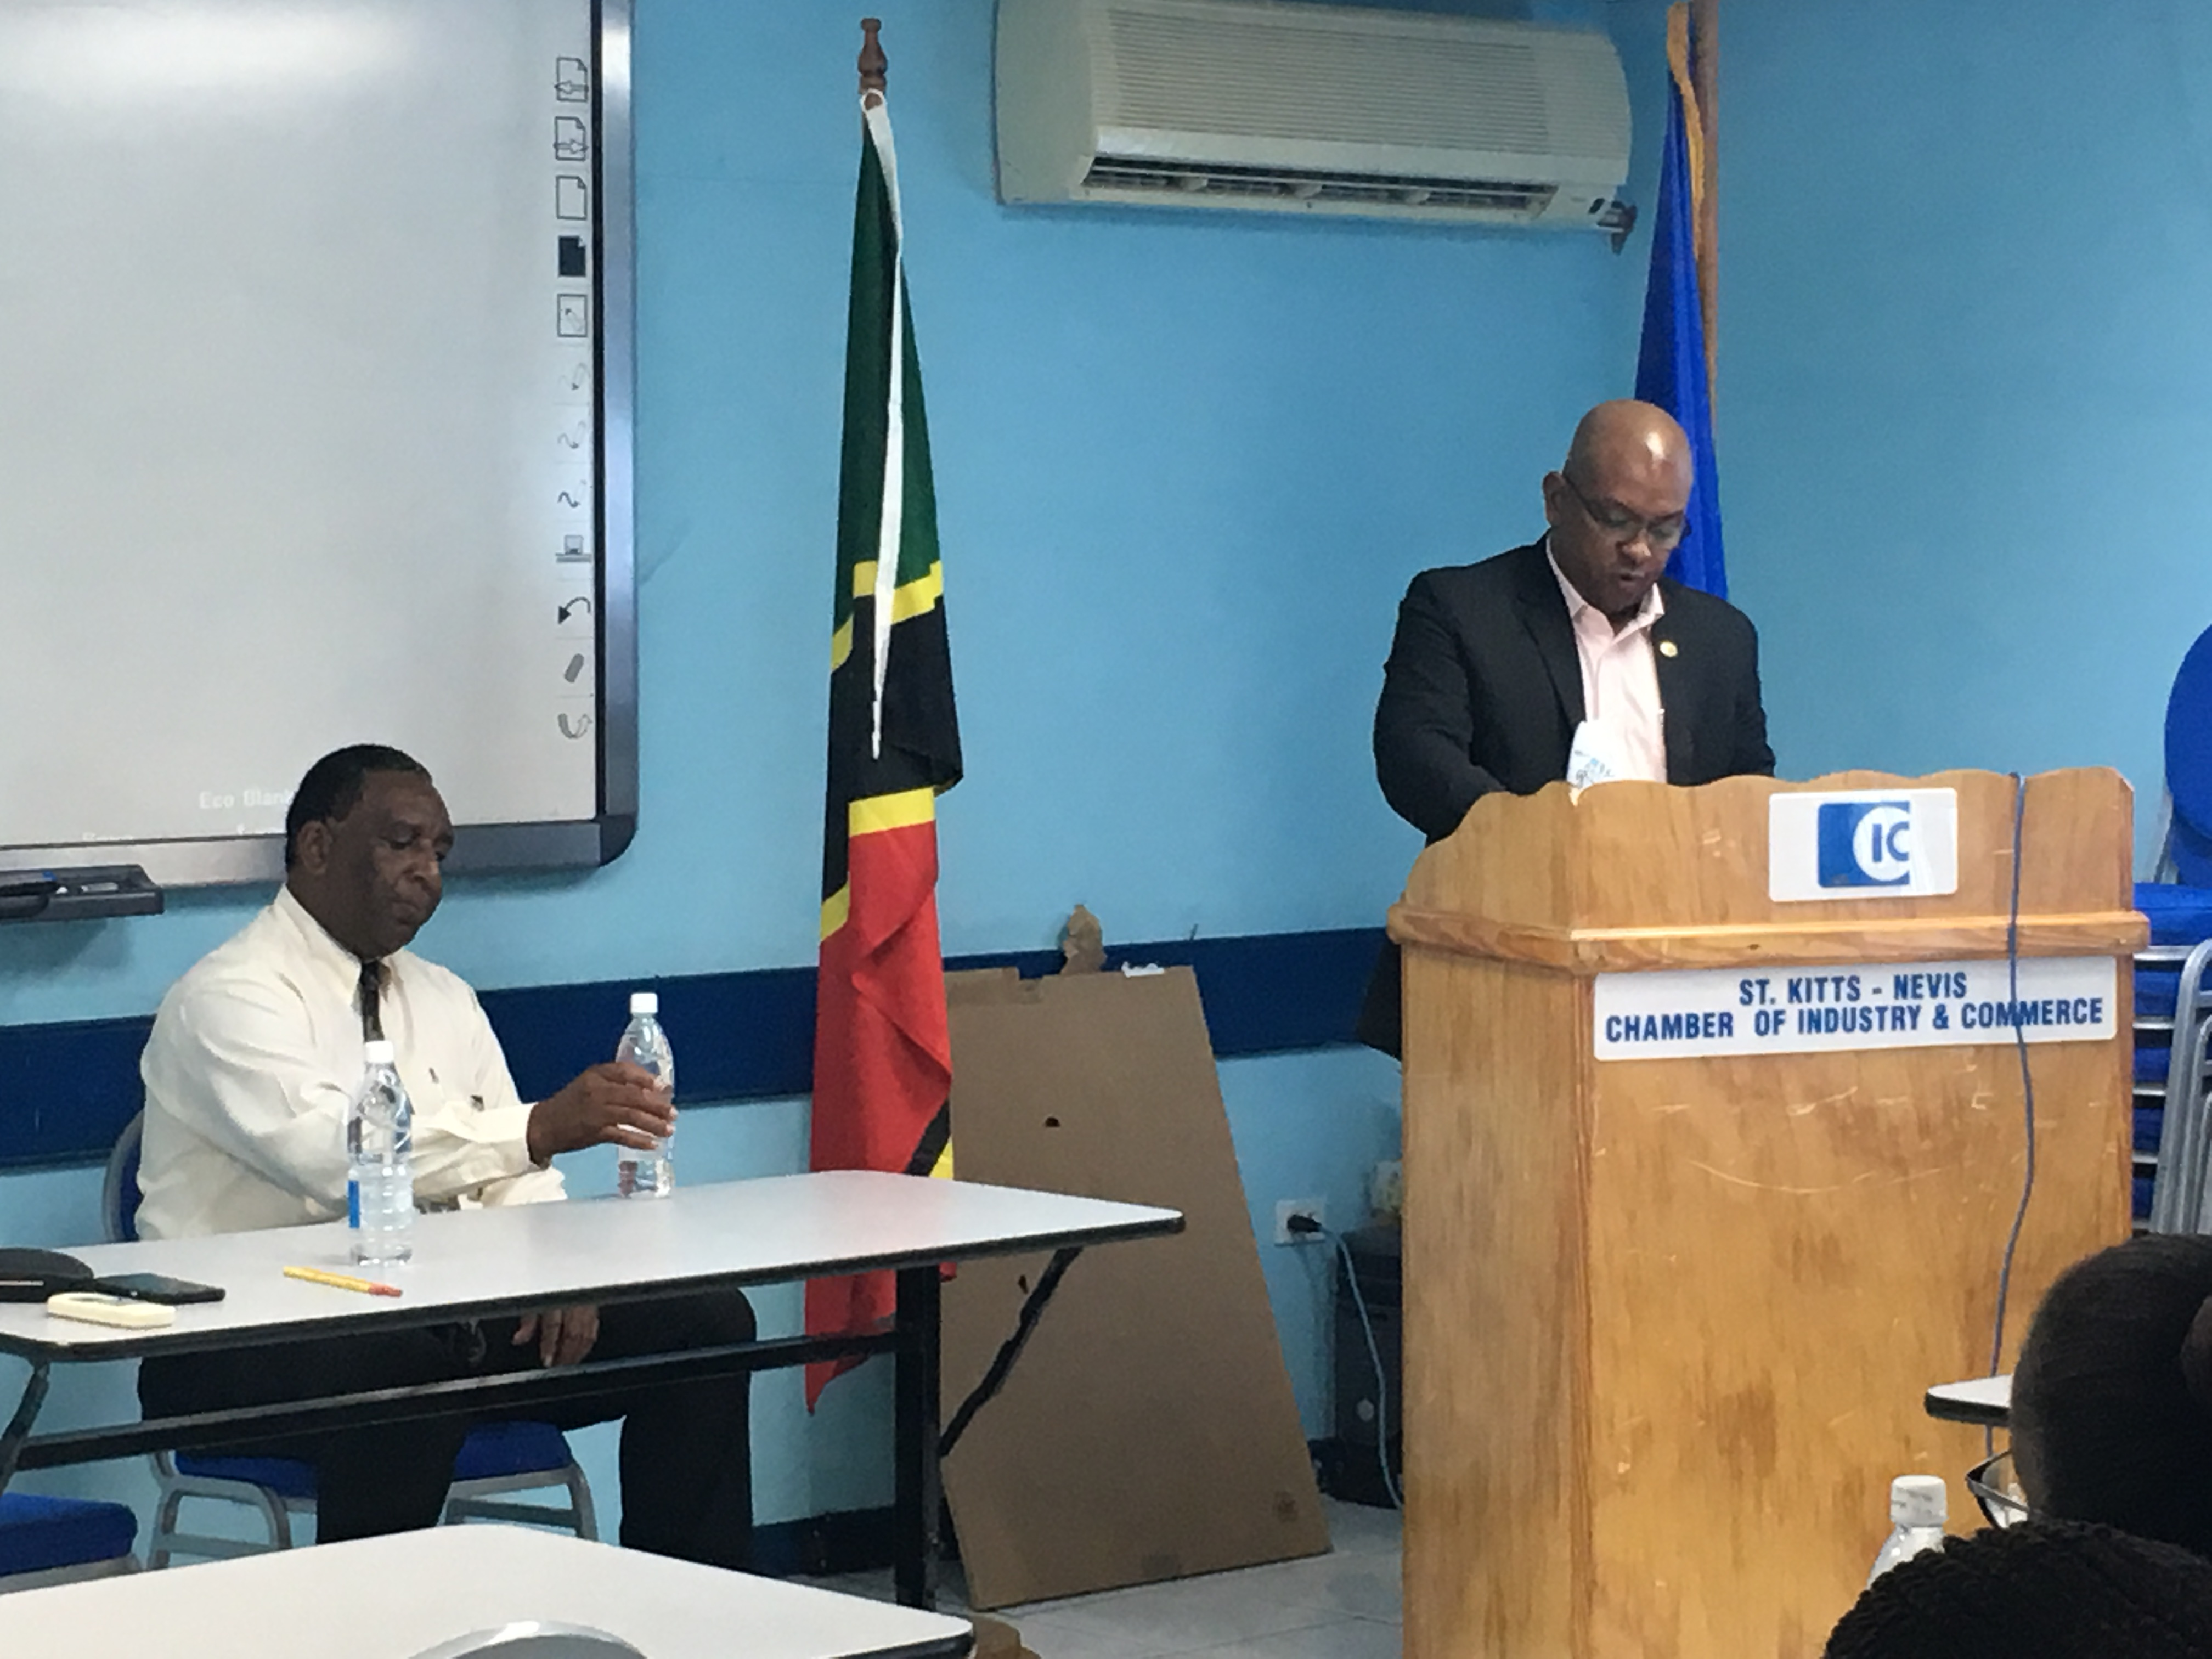 The Organizaion of American States in St Kitts and Nevis in Partnership with the Ministry of Tourism, International Trade, Industry and Commerce, in the Month of March, 2017, hosted a Three-day Certificate Training for Future Small Business Center (SBDC), with the Aim of Establishing SBDC in St Kitts and Nevis that would Facilitate Entrepreneurs in the Small-Medium Size Sector.